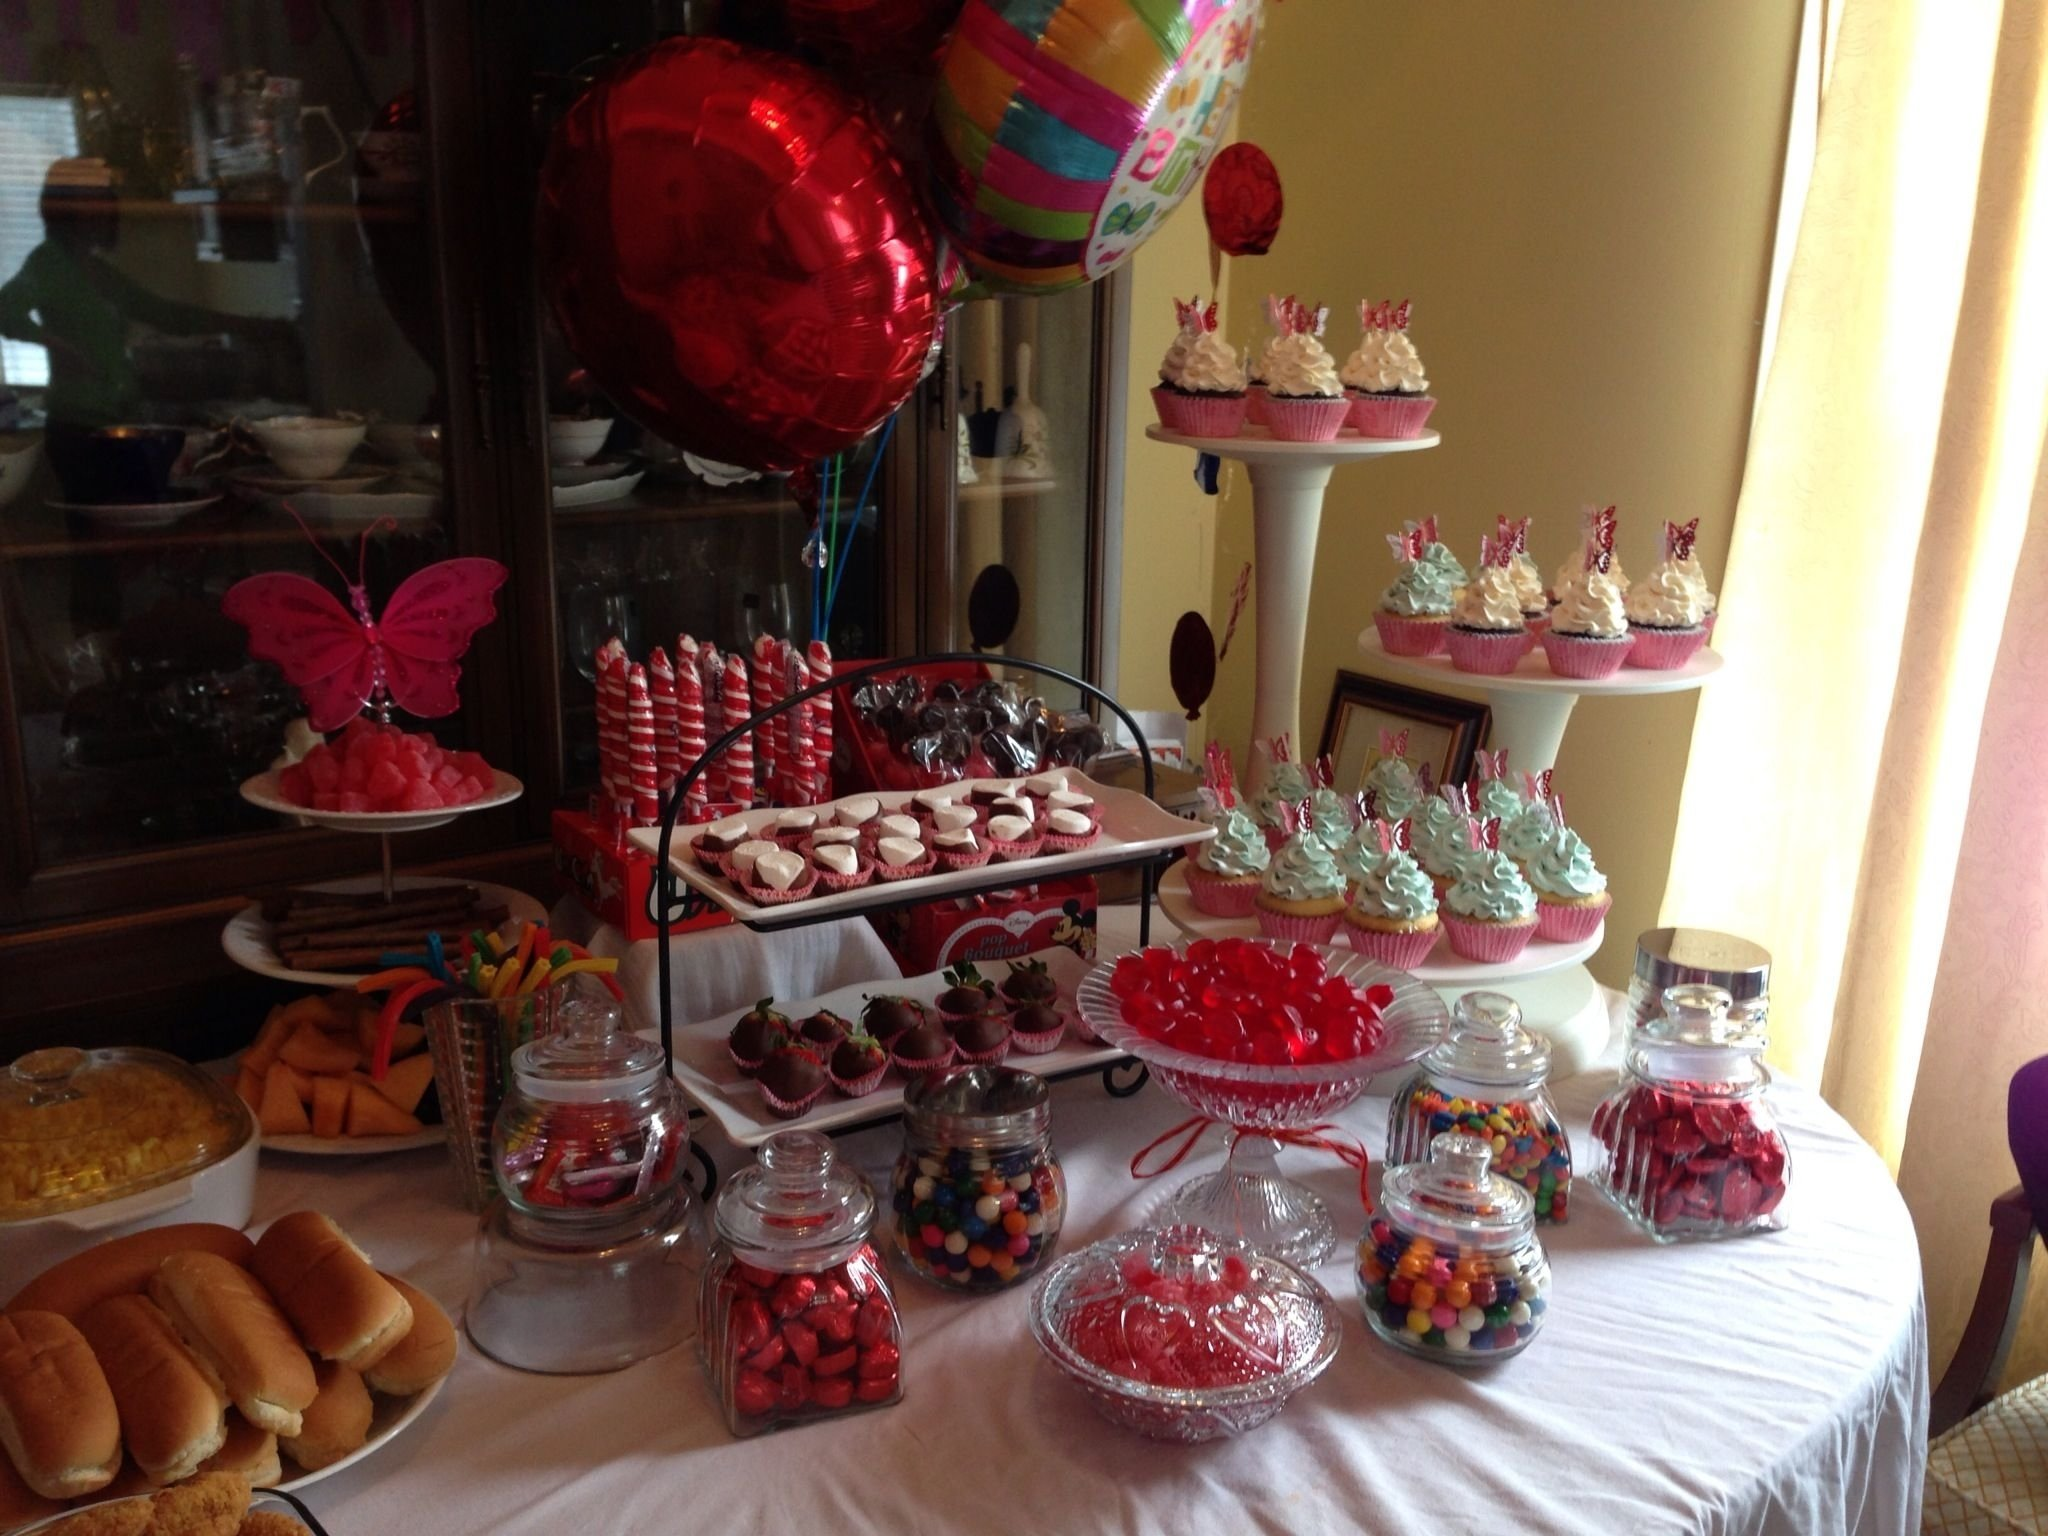 10 Elegant Ideas For A 13Th Birthday Party For A Girl beas 13th birthday party party ideas pinterest 13th birthday 7 2021